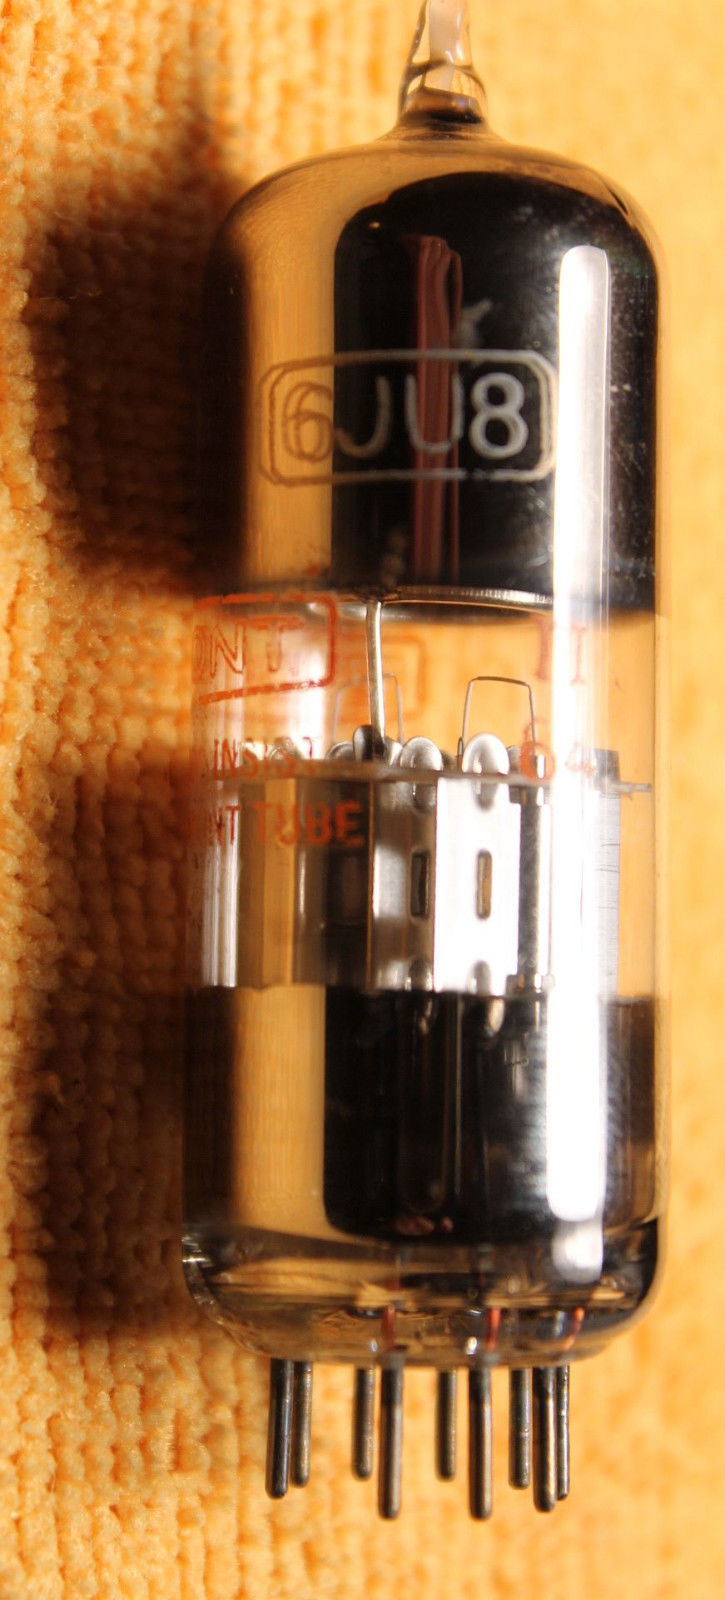 Vintage Radio Vacuum Tube (one): 6JU8 - Tested Good